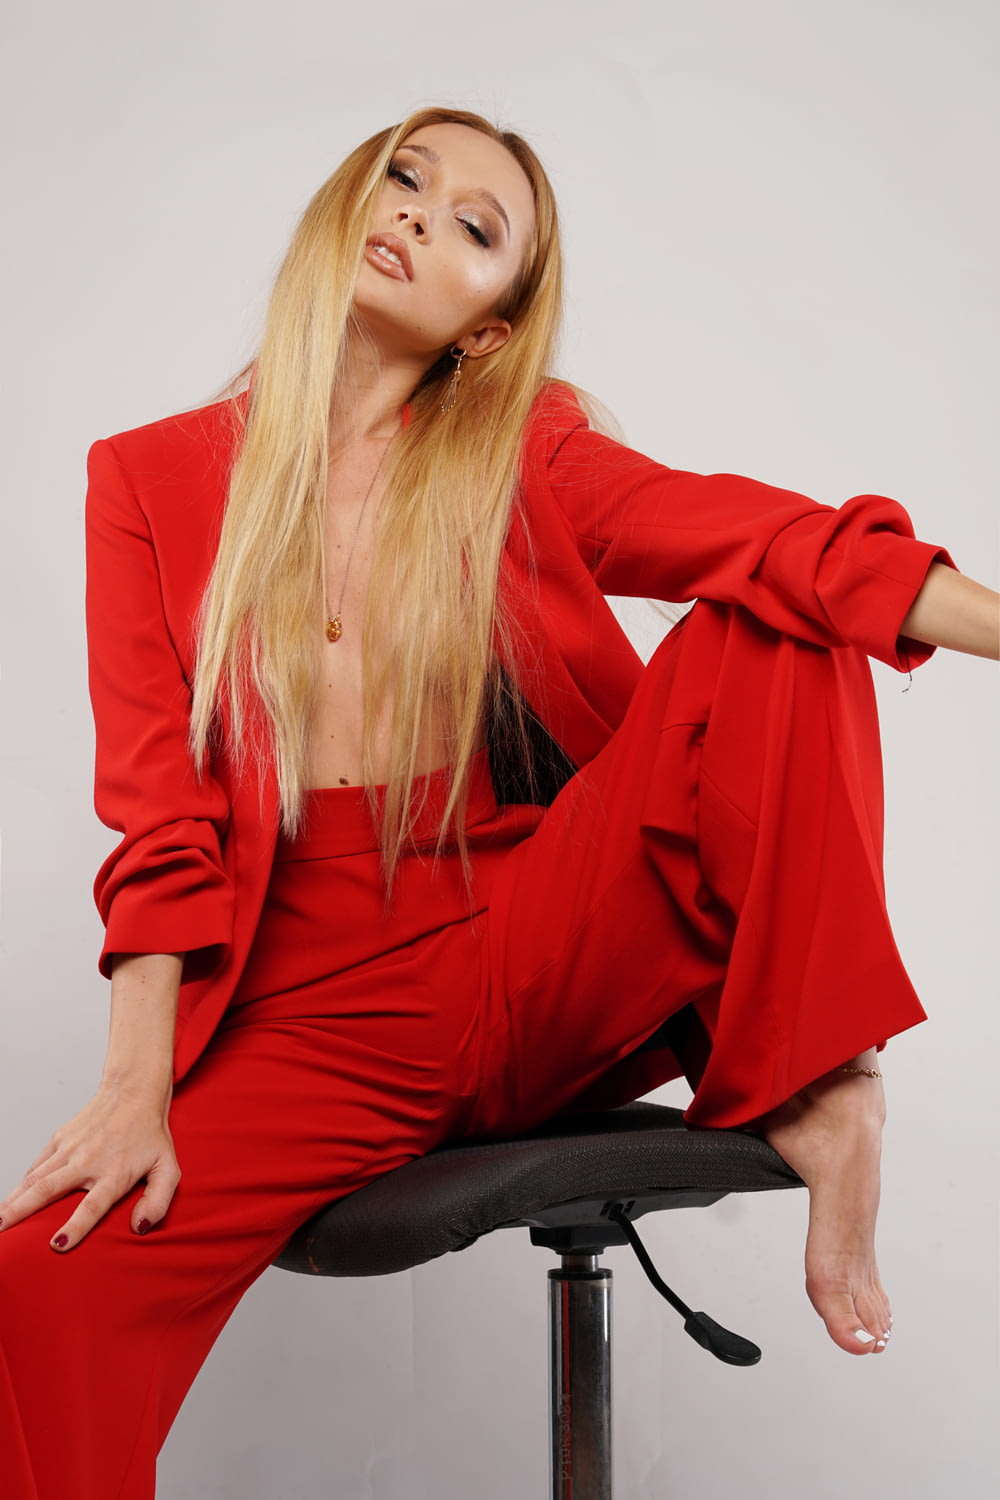 woman in red long sleeve shirt and black pants sitting on black chair